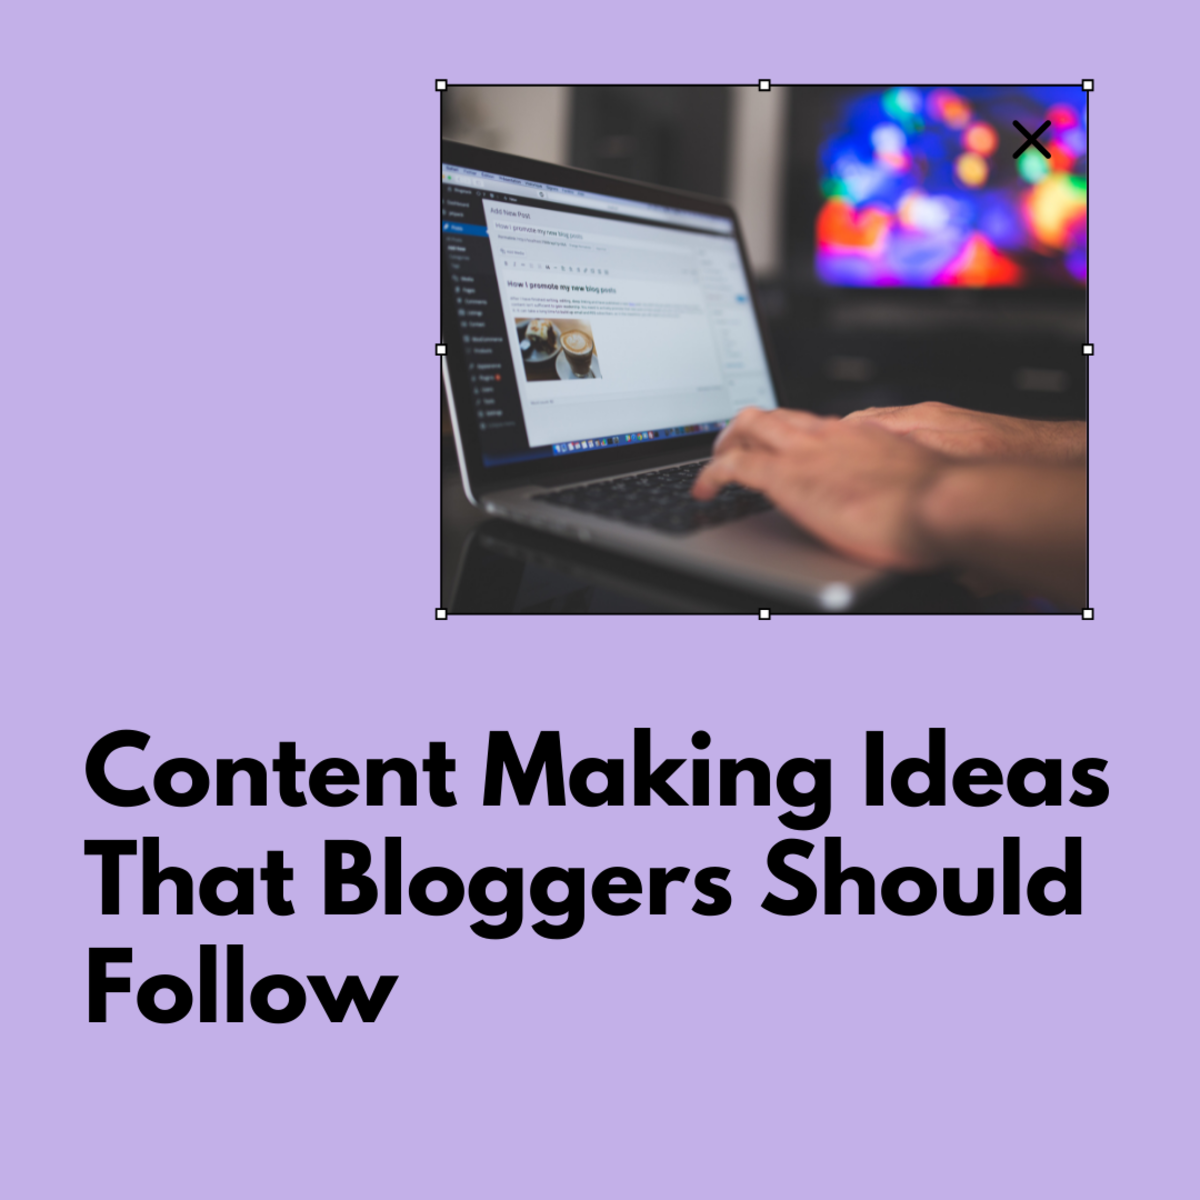 Content Making Ideas That Bloggers Should Follow